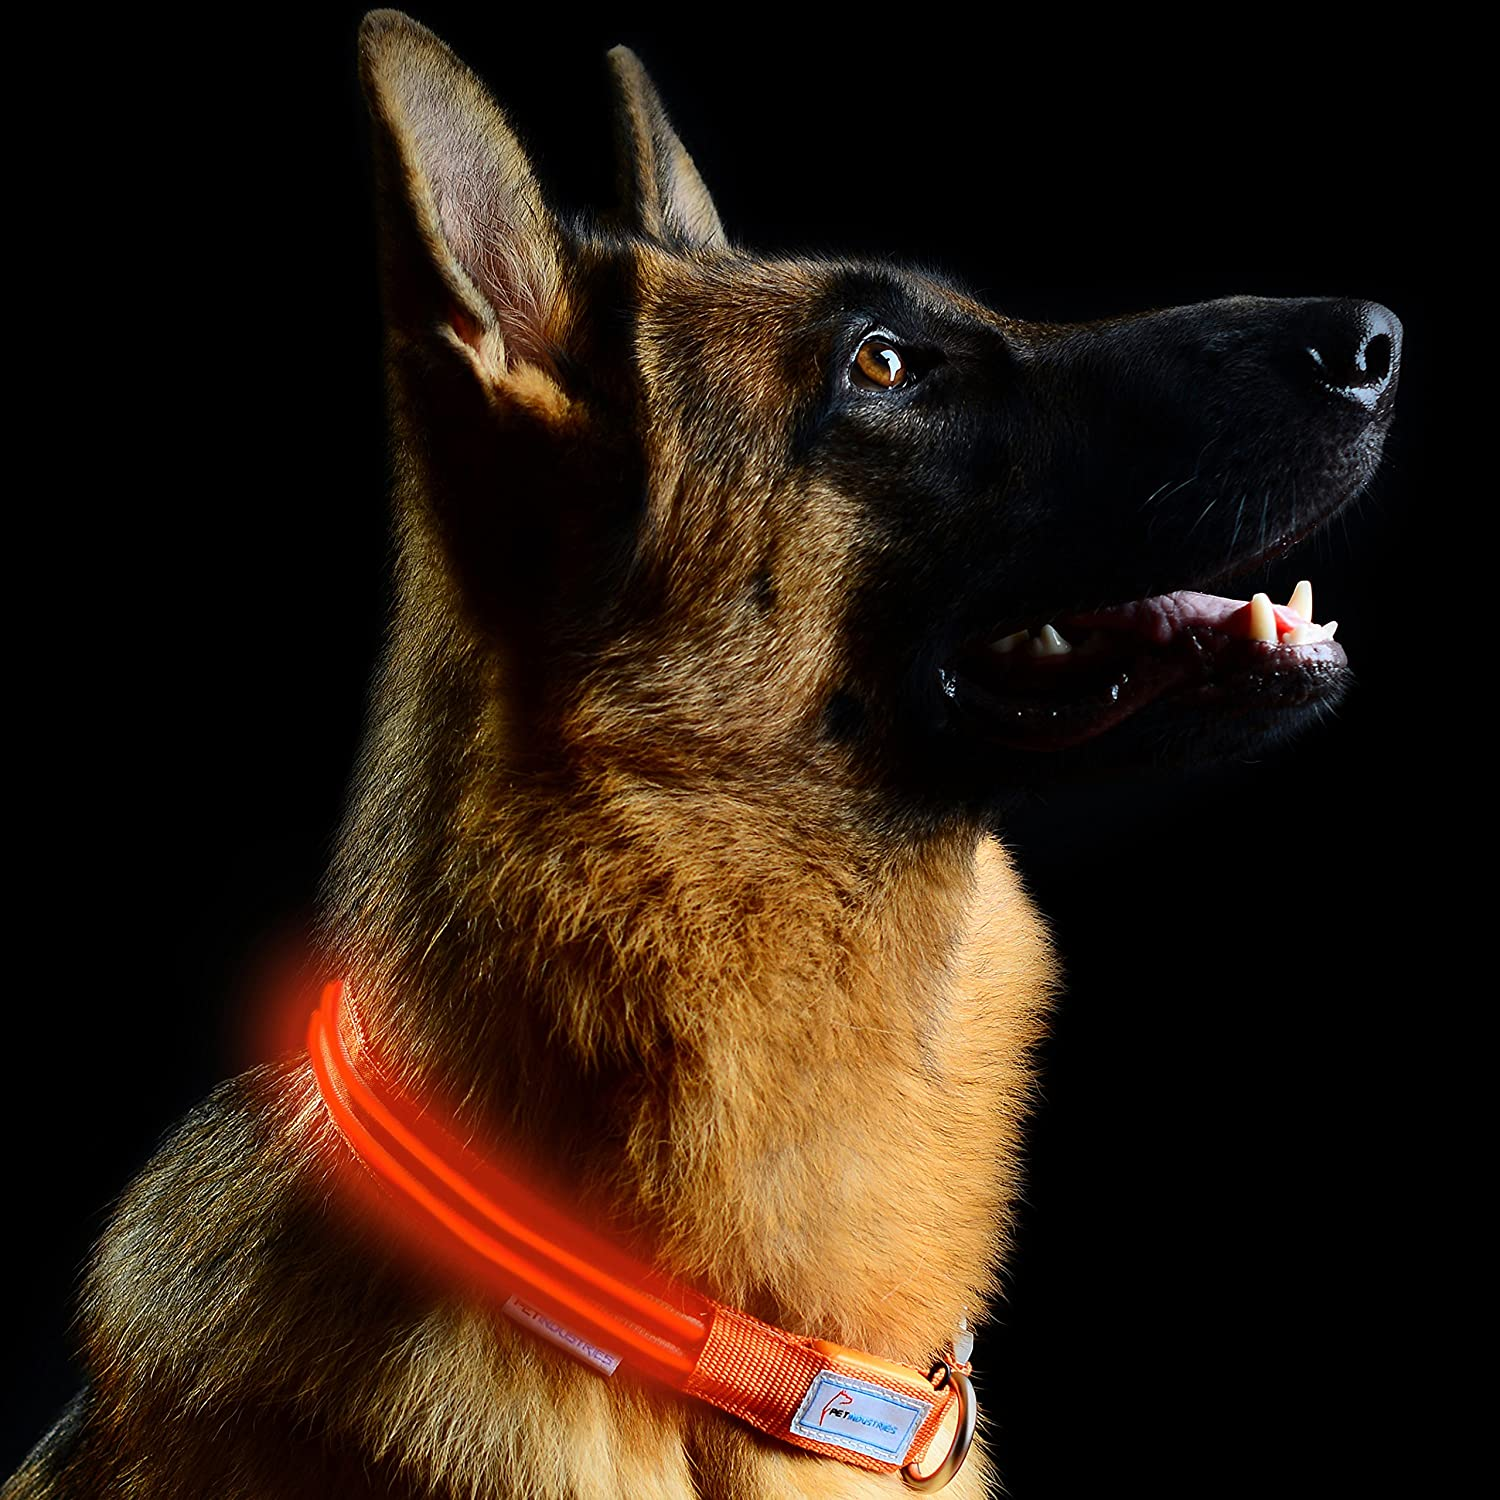 Aerospace orange Large [18.5-23.5\ Aerospace orange Large [18.5-23.5\ Pet Industries Metal Buckle LED Dog Collar, USB Rechargeable, Available in 7 colors & 4 Sizes (Large [18.5-23.5    47-60 cm], Aerospace orange)